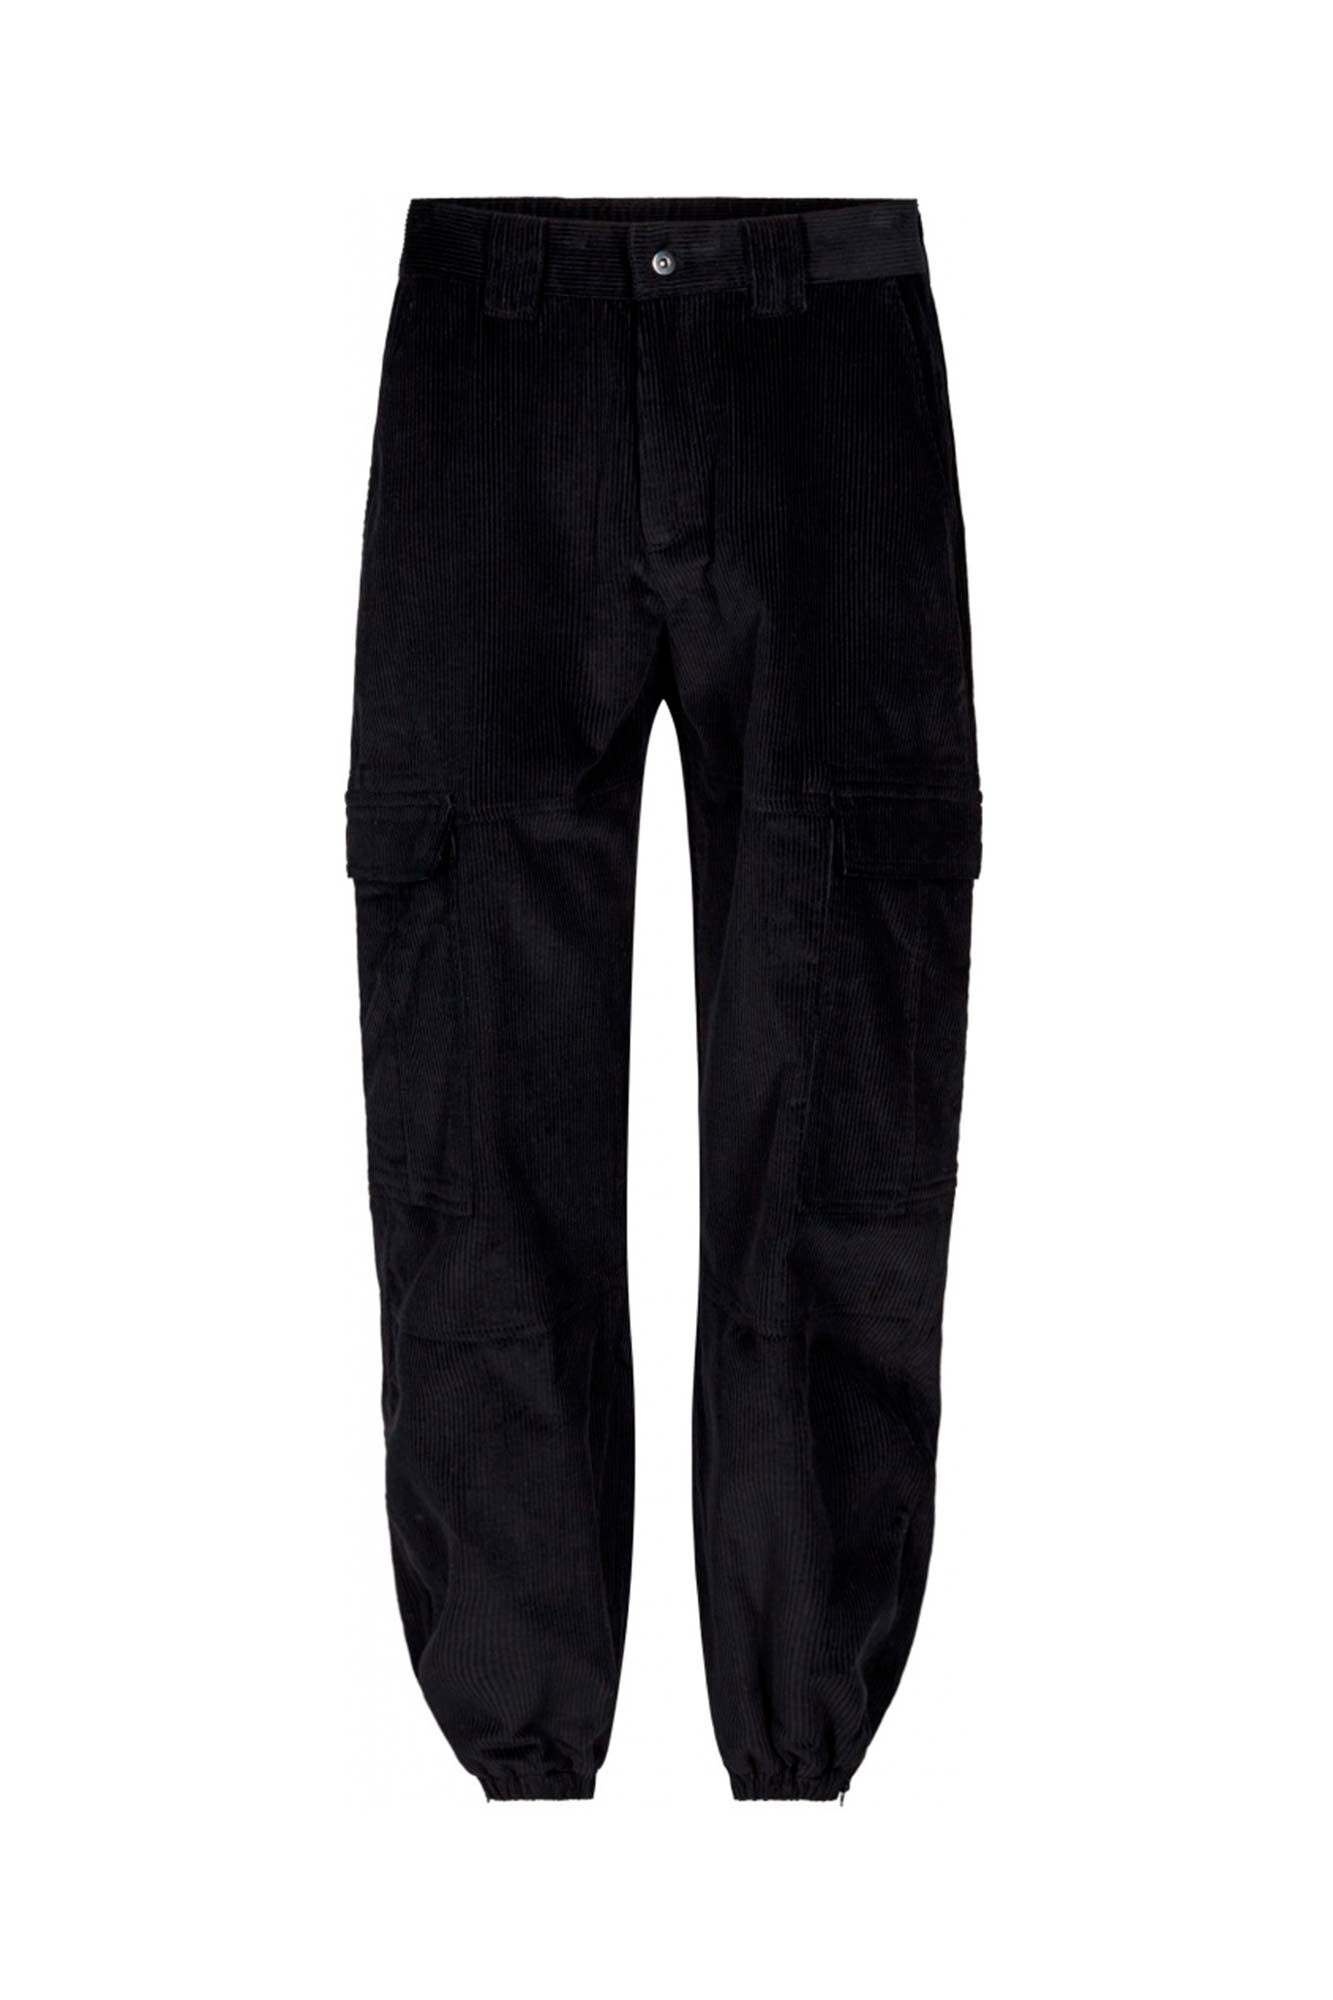 Pay pants FA900018, BLACK